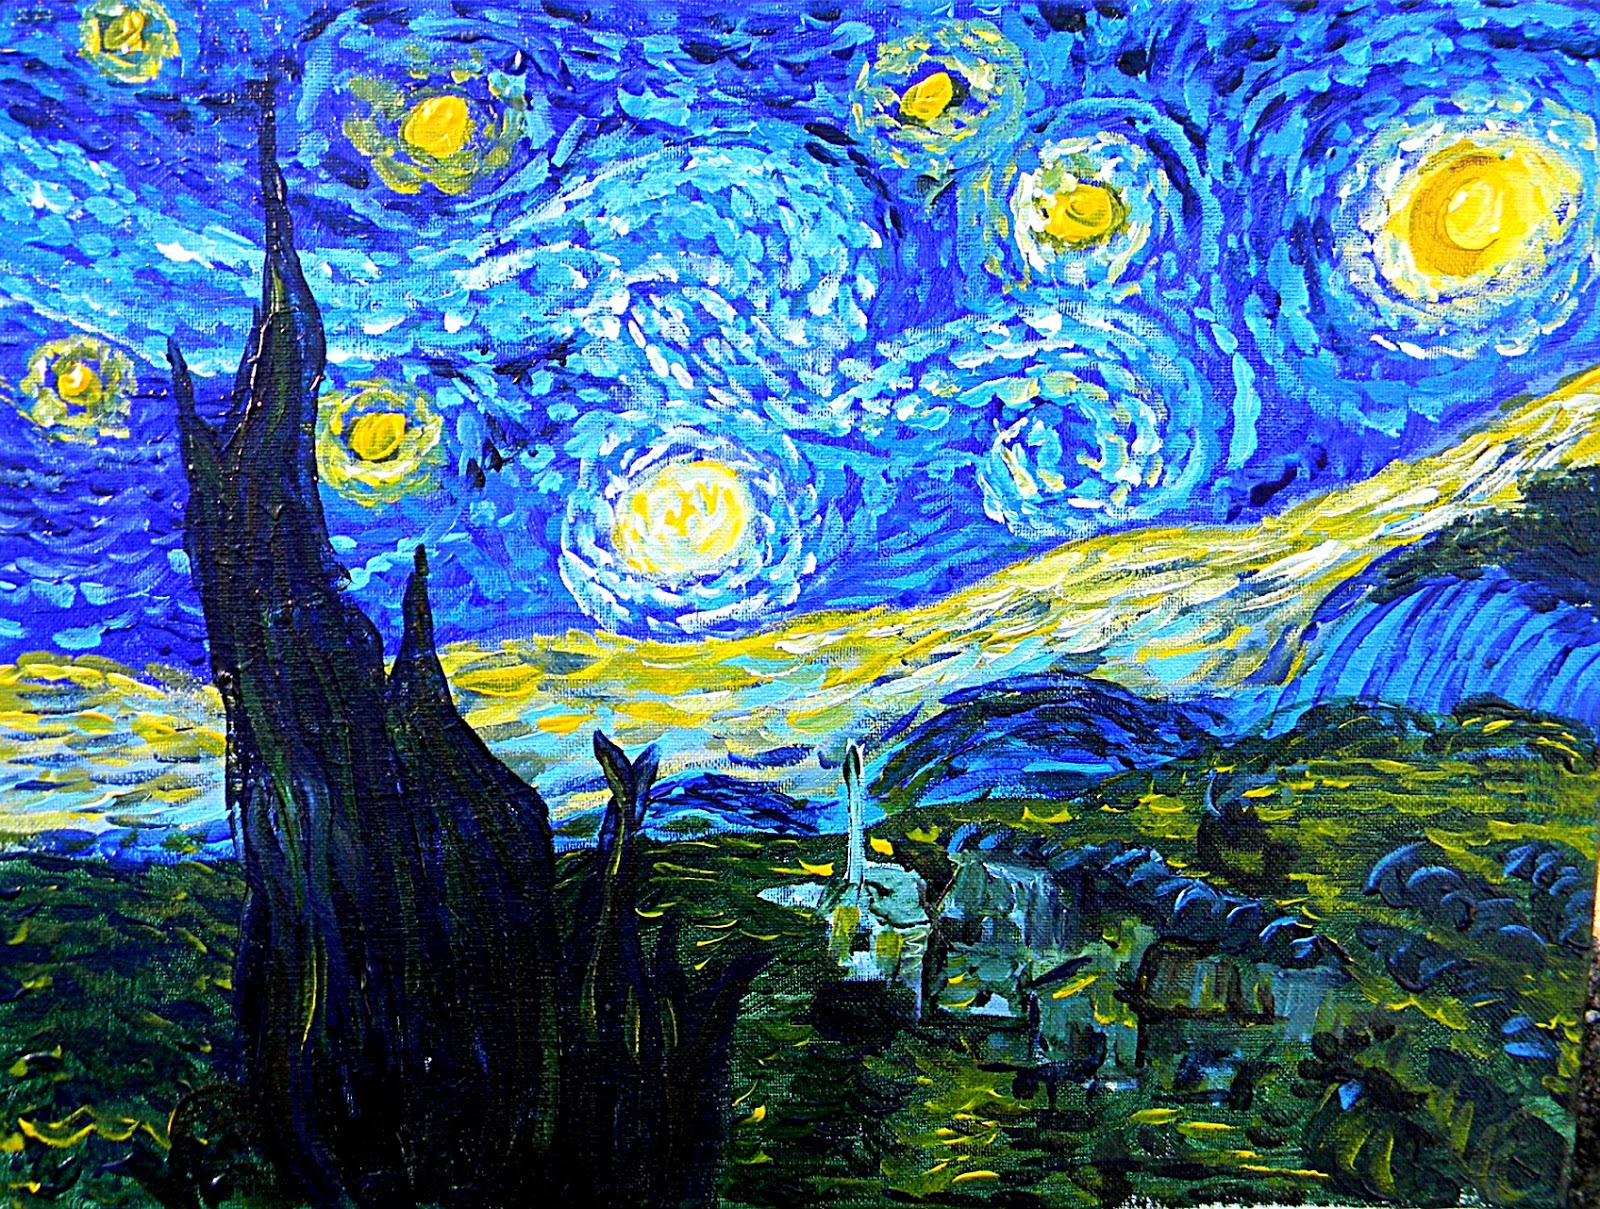 thesis statement for starry night Math, calculator: not permitted sample prompt's summary statement about the importance of van gogh's starry night or the scientific evidence.